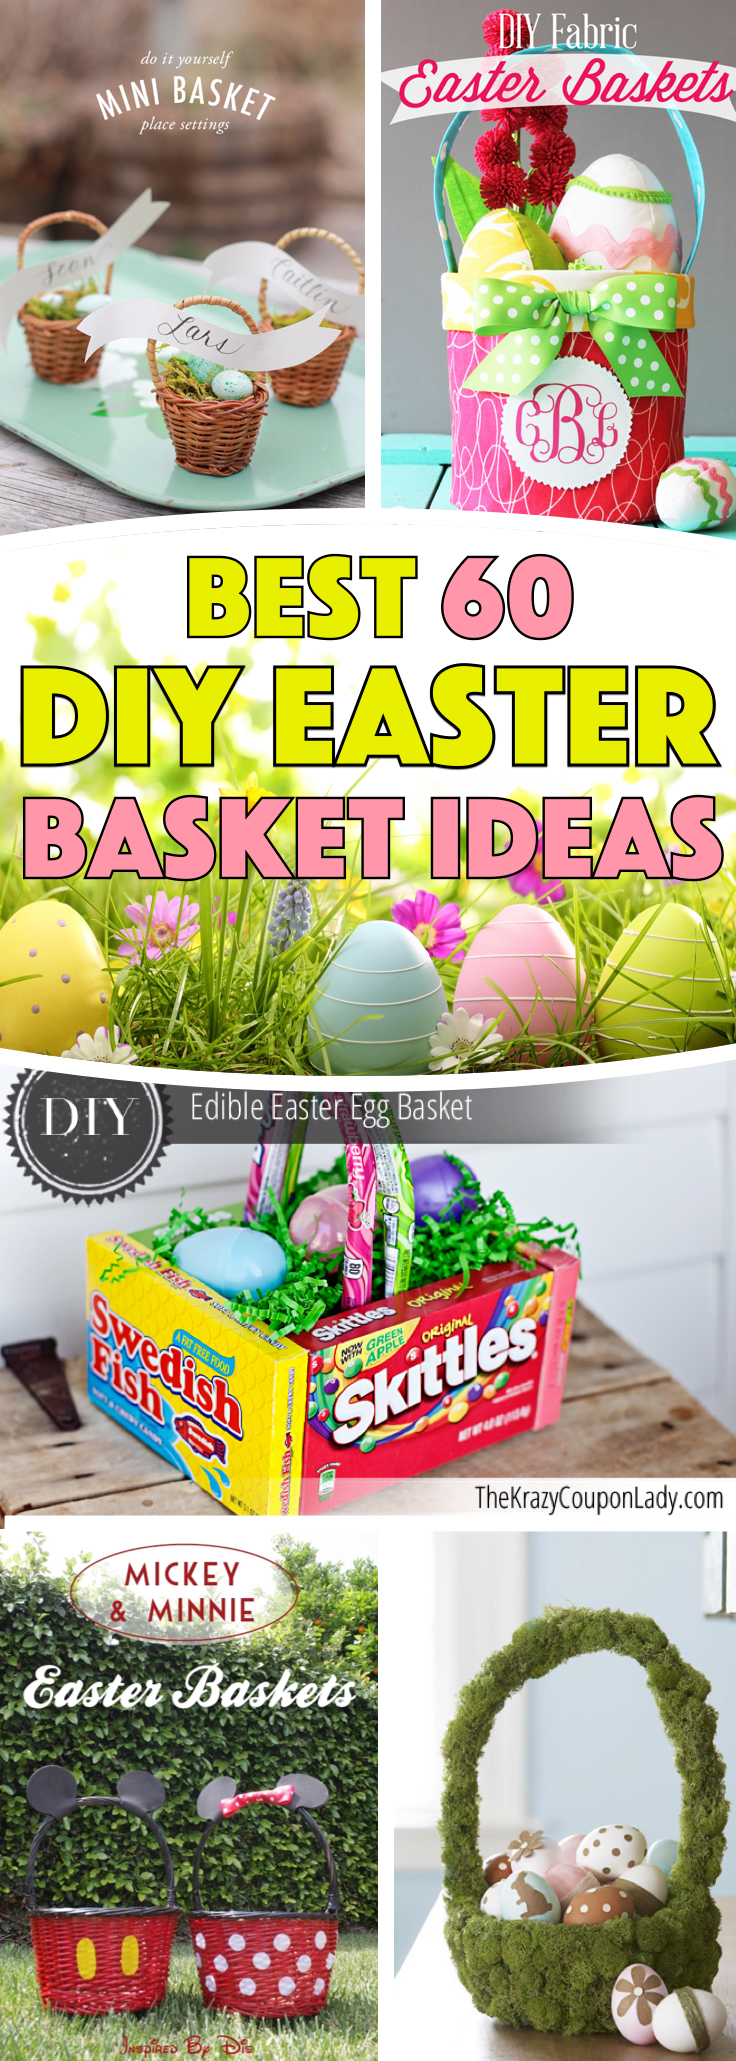 DIY Easter Basket Ideas For Your Freshly Dyed Easter Eggs